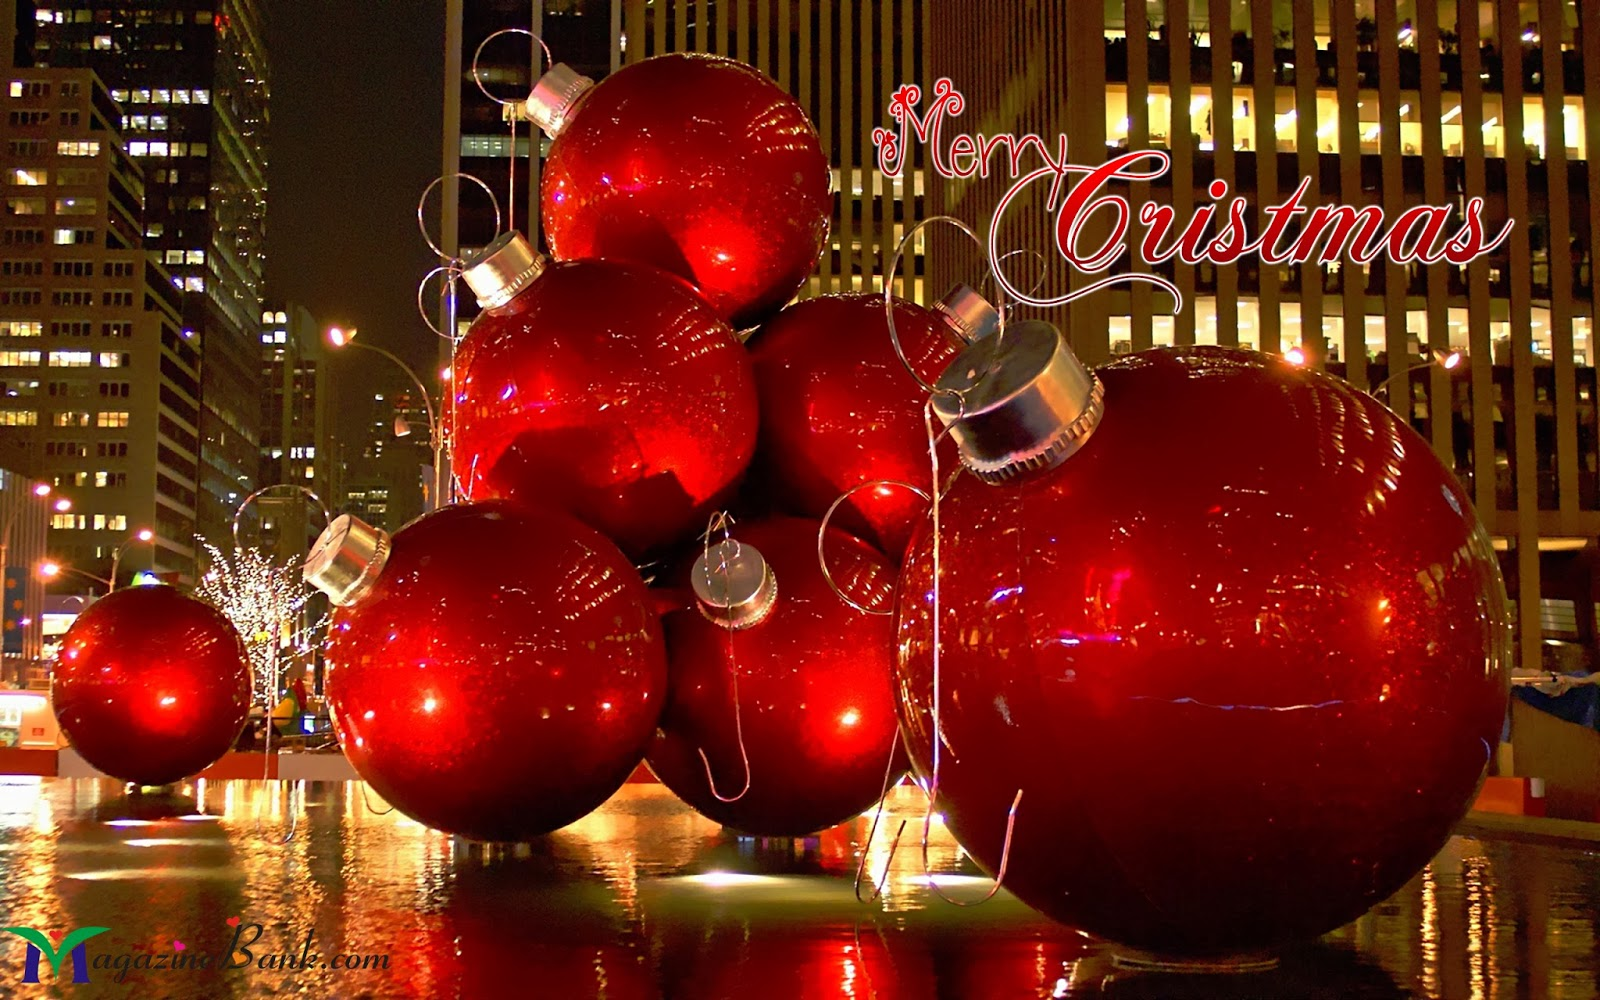 merry christmas 2013 hd wallpapers - i have a pc | i have a pc